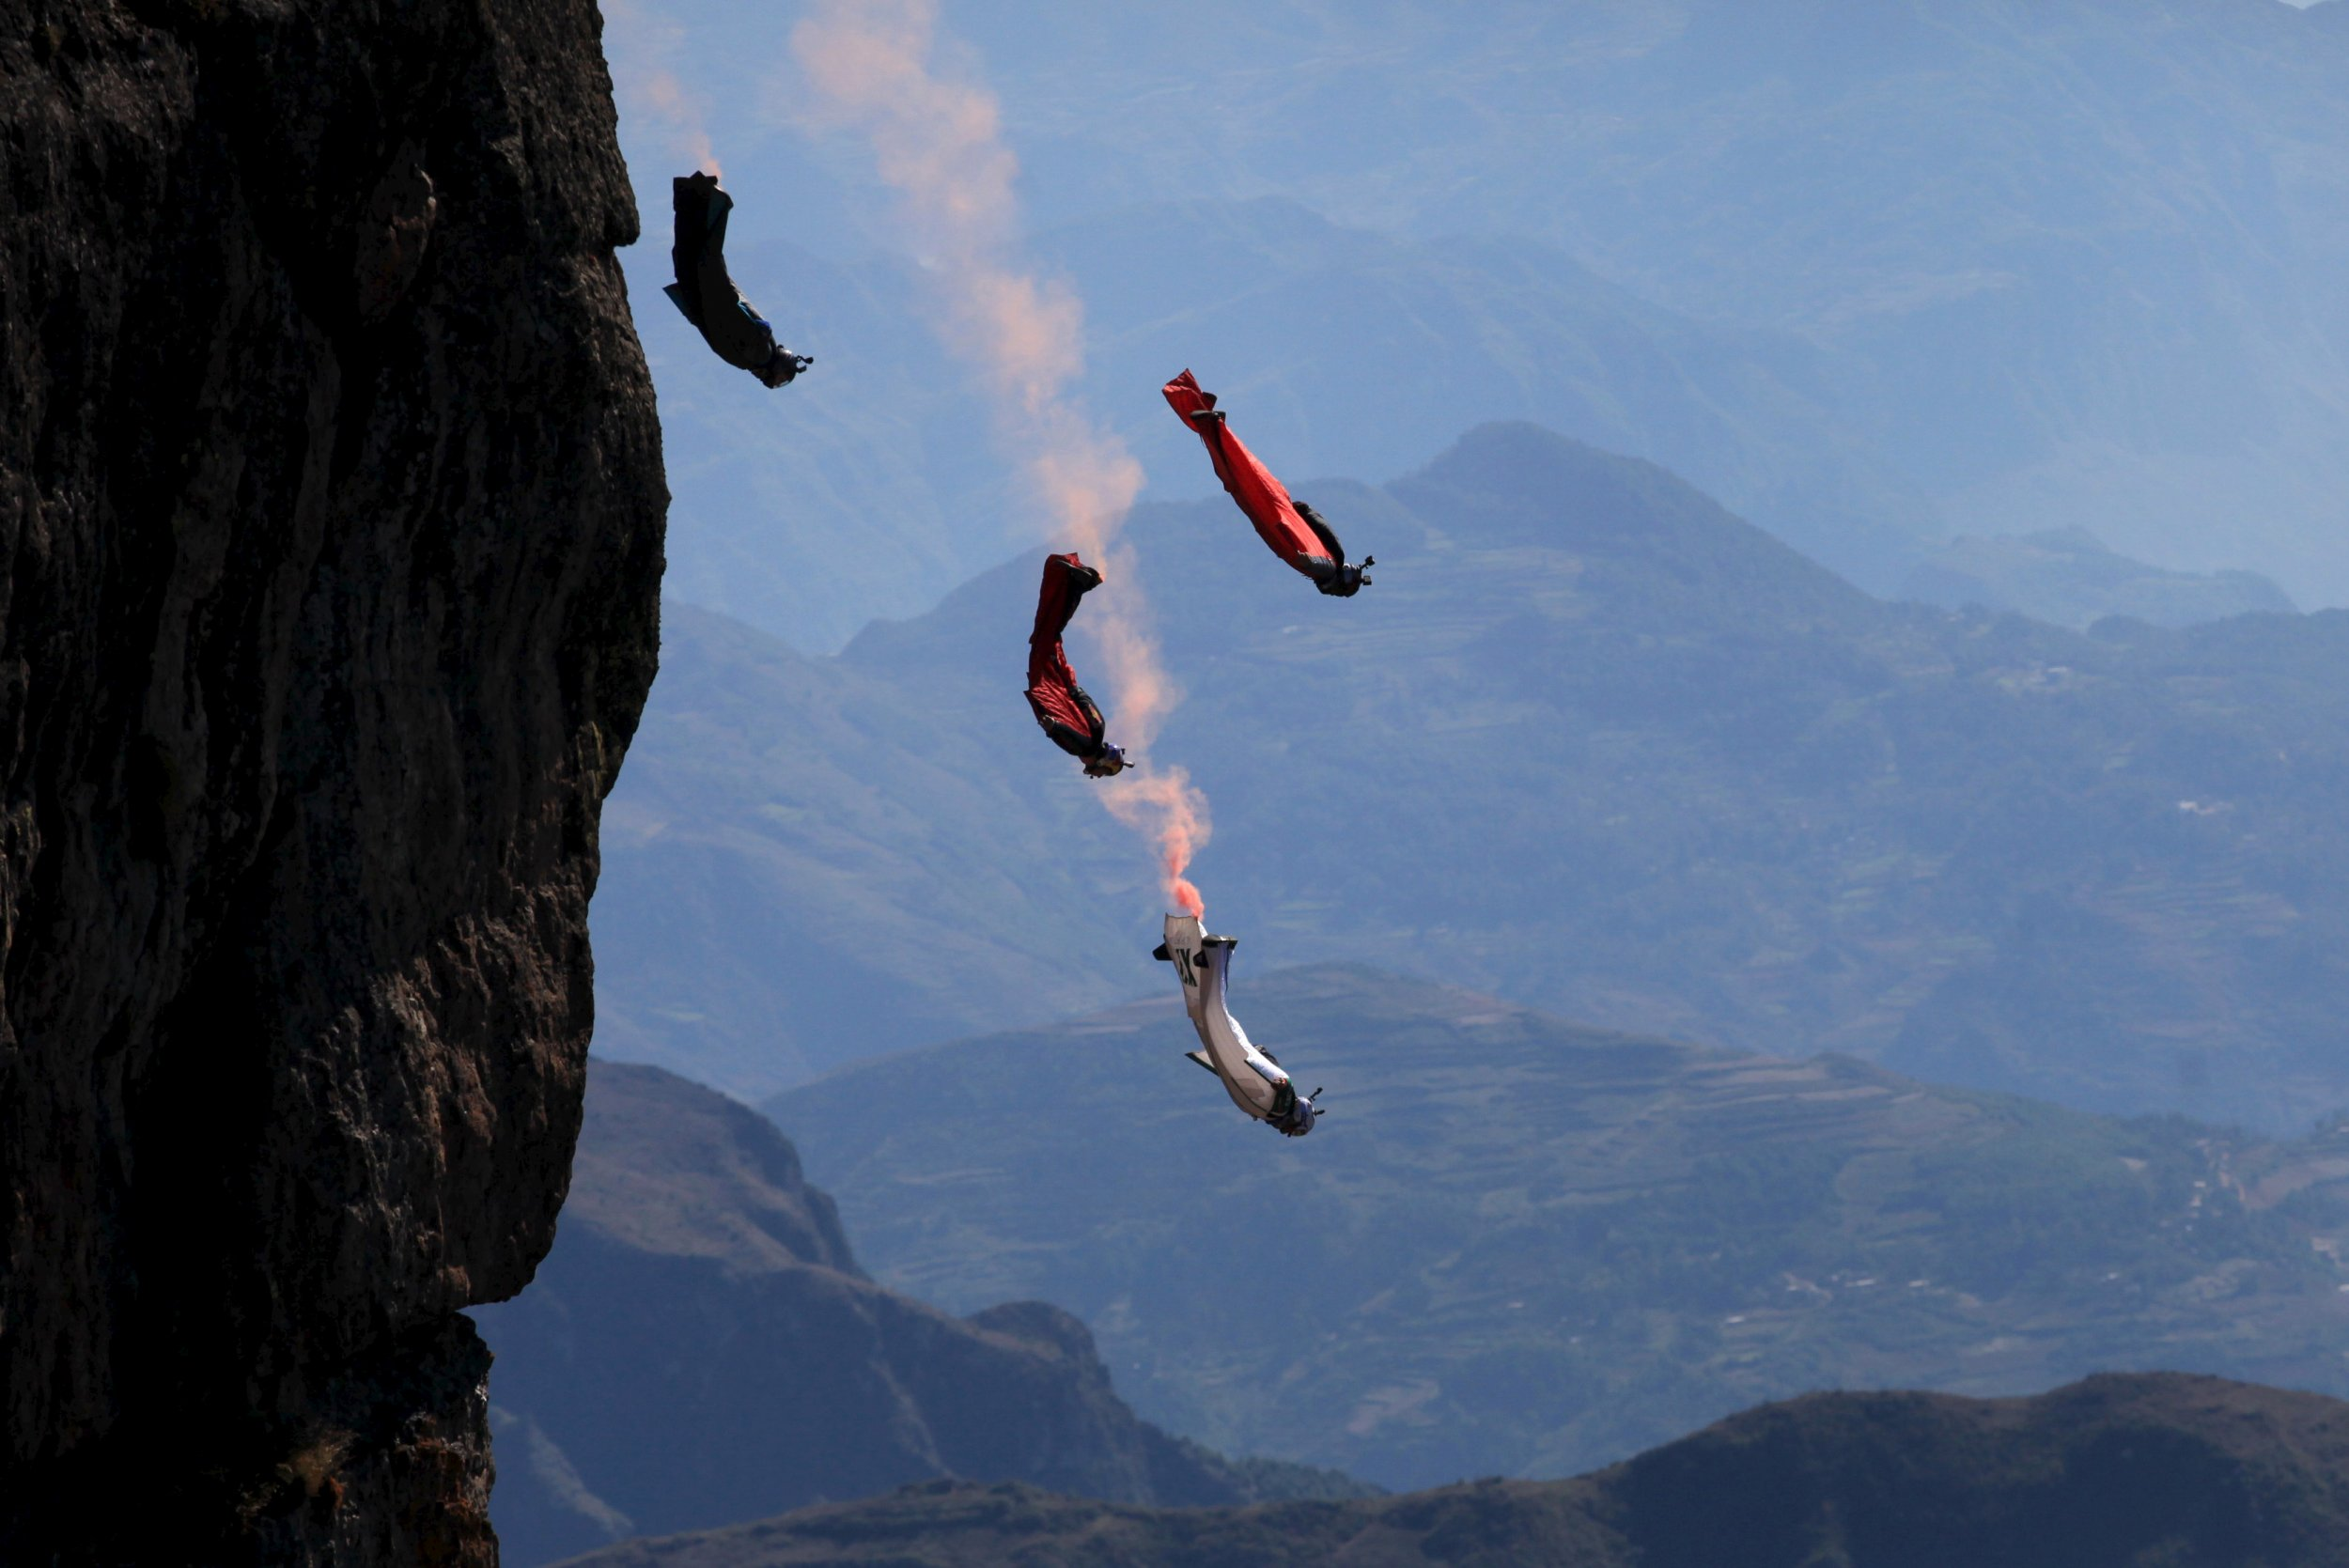 Wingsuit flyer contestants